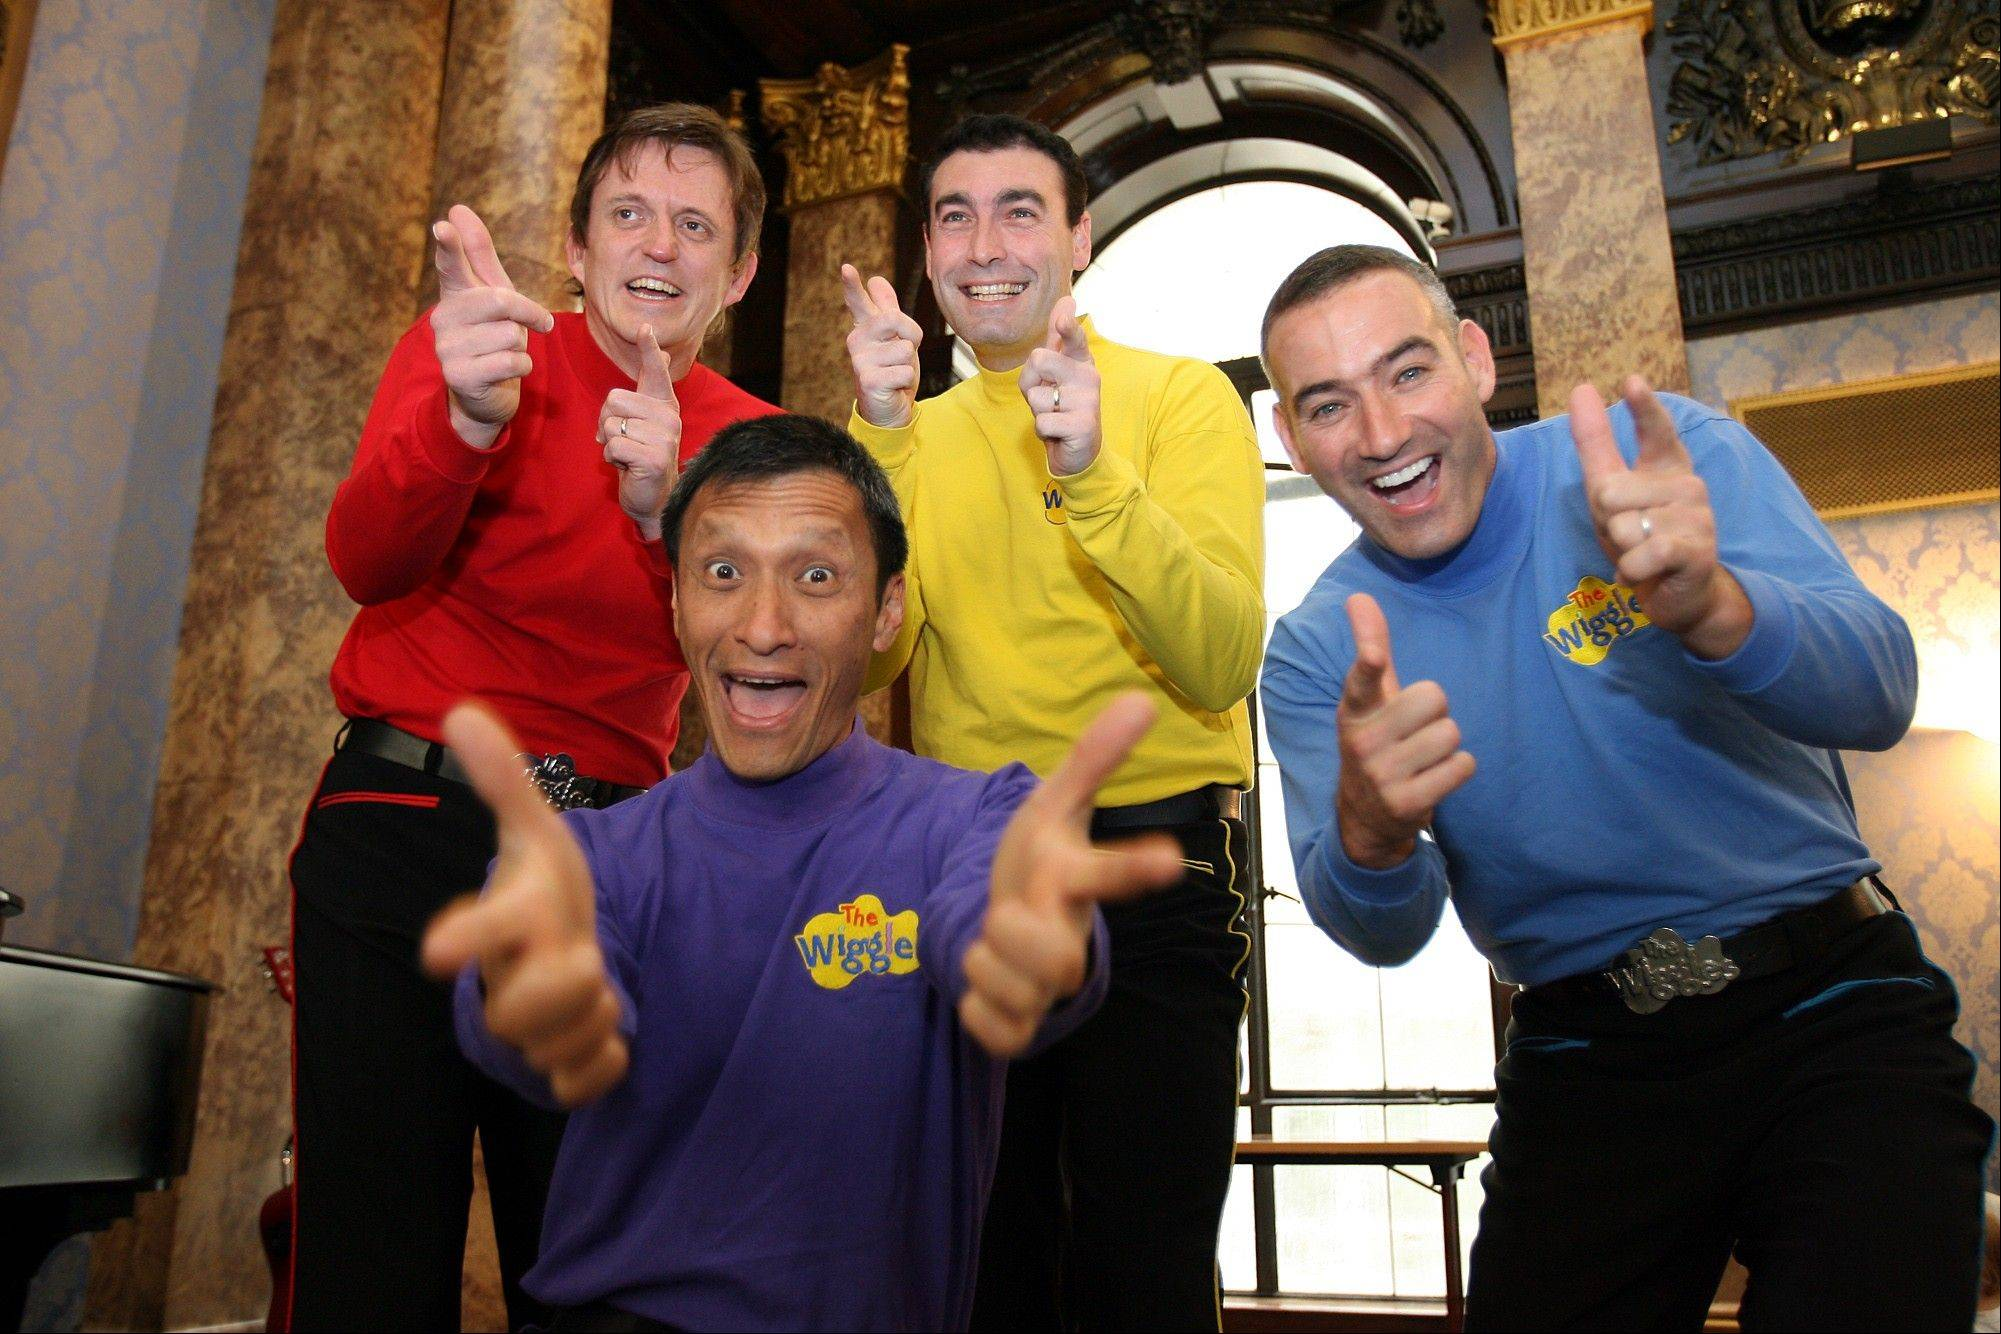 Australian children's entertainers The Wiggles bid adieu to three retiring original members -- Murray Cook (Red Wiggle), Greg Page (Yellow Wiggle) and Jeff Fatt (Purple Wiggle) -- on a special worldwide tour that stops at the Akoo in Rosemont. Anthony Field (Blue Wiggle) will continue on with the group.